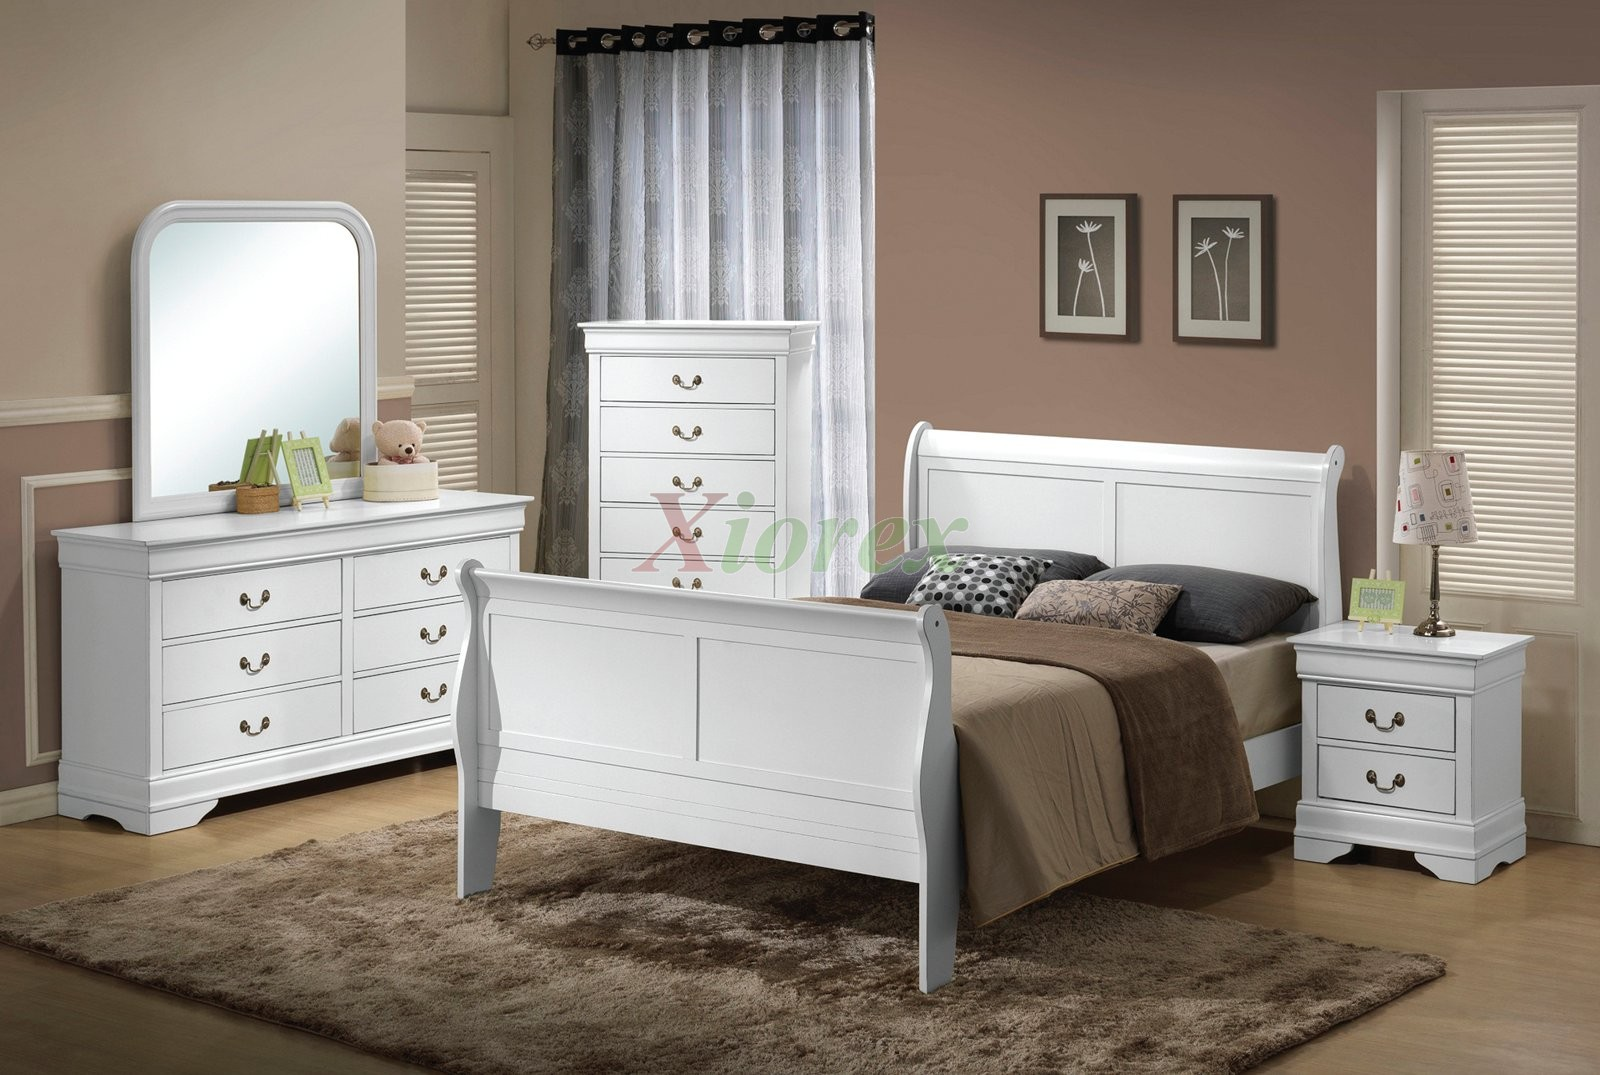 semi gloss sleigh like bedroom furniture set 170 in cherry black white. Black Bedroom Furniture Sets. Home Design Ideas